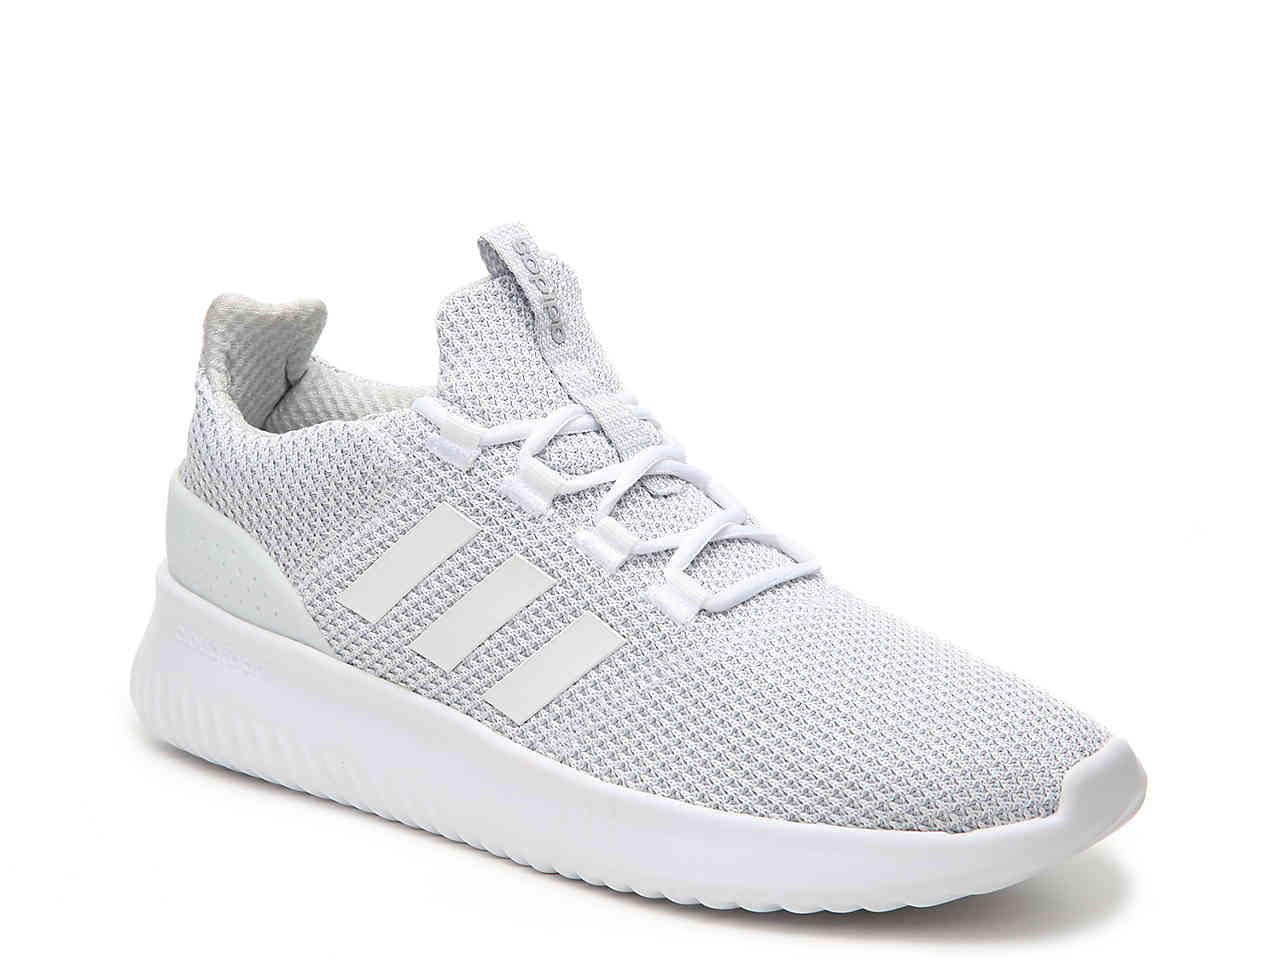 Lyst - adidas Cloudfoam Ultimate Sneaker in White for Men 7c5f28a42